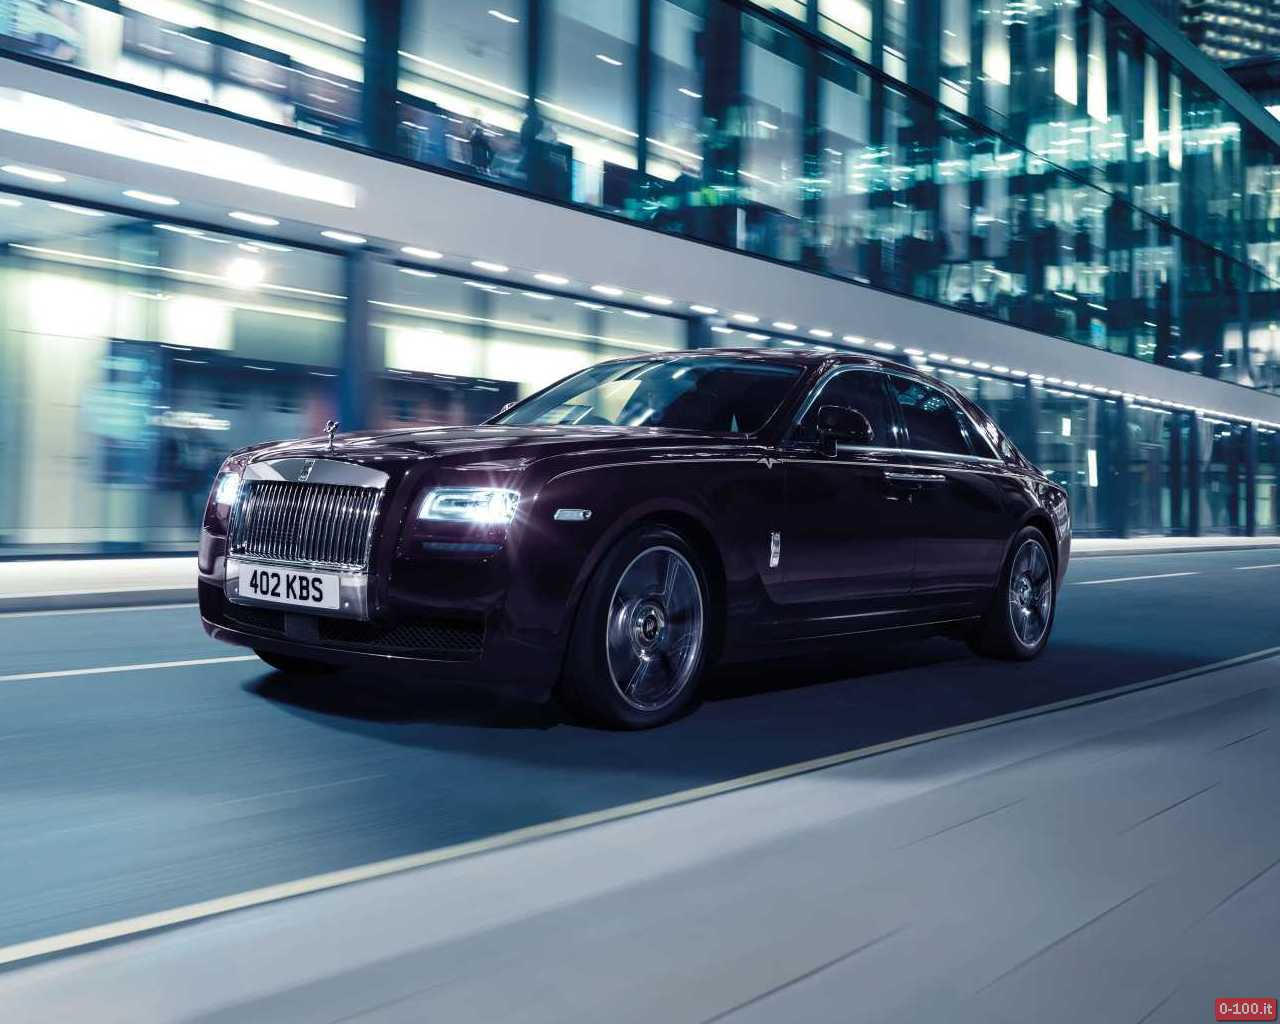 rolls-royce-ghost-e-ghost-lwb-v-specification_0-100_4